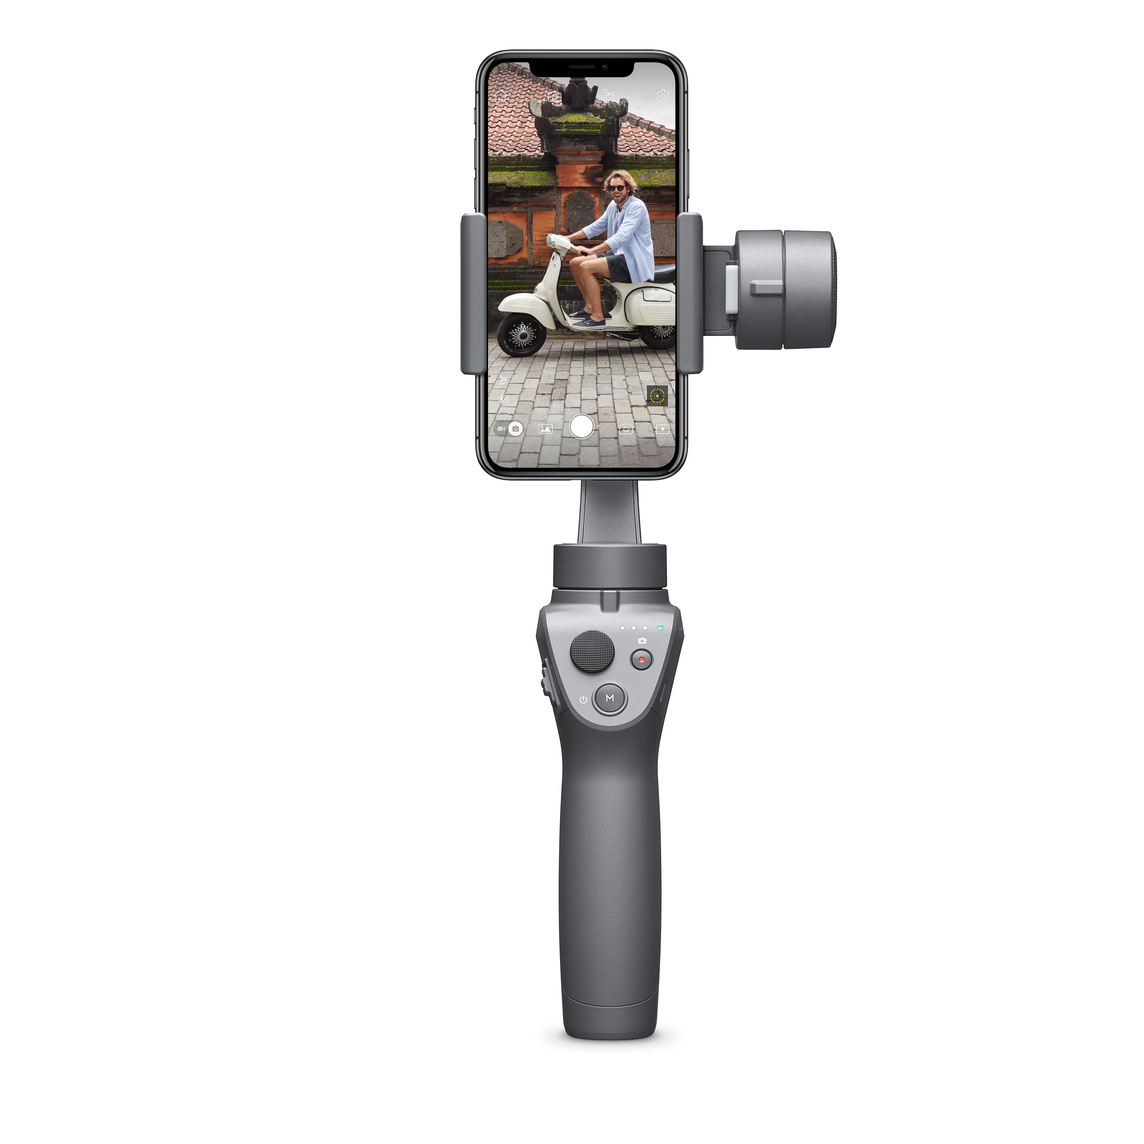 DJI OSMO Mobile 2 Gimbal for iPhone